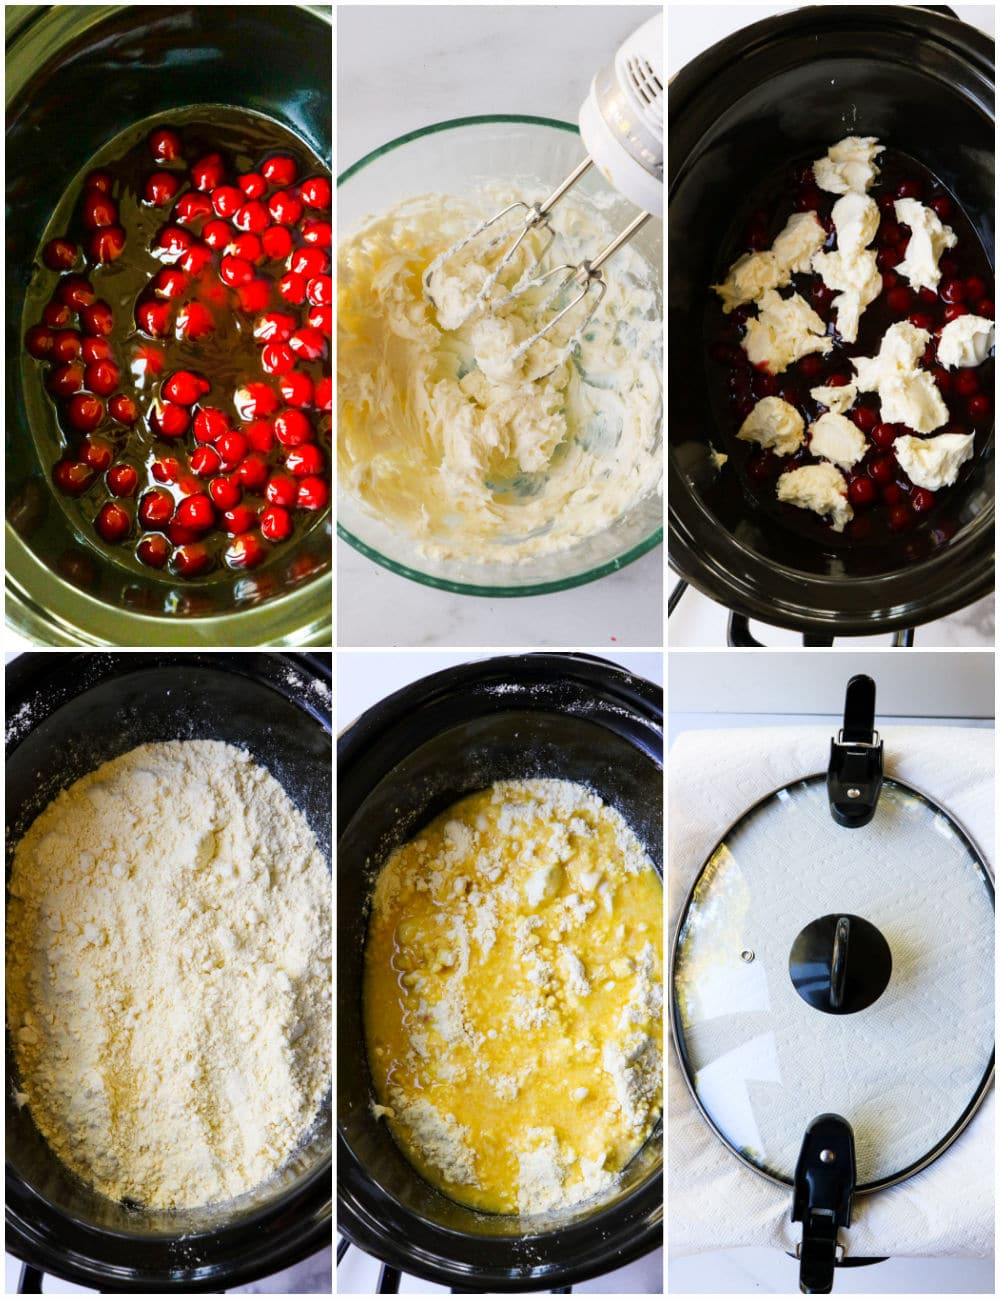 Collage showing the recipe steps.